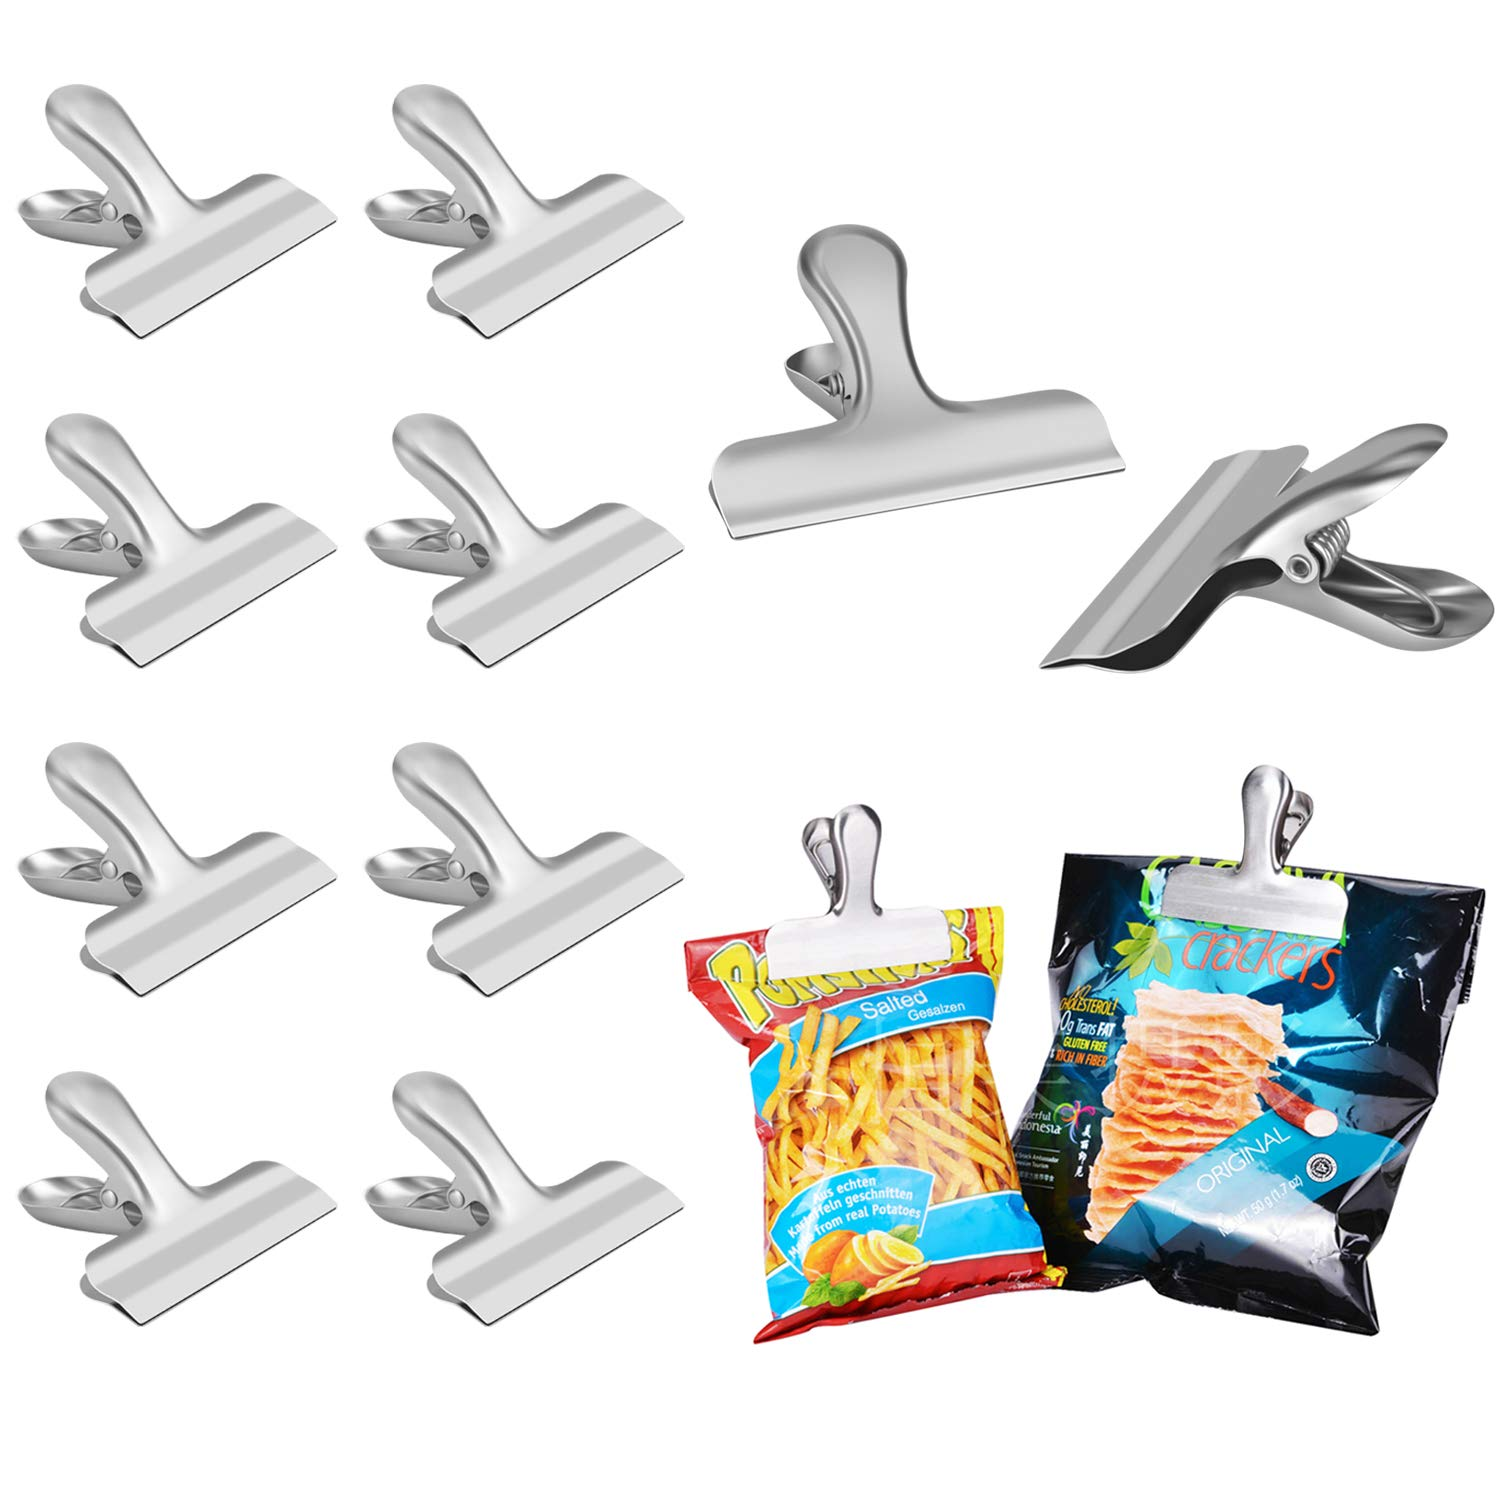 Chip Bag Clips set of 8 - LEYOSOV 3 Inches Wide Stainless Steel Heavy-duty Chip Clips, All-Purpose Air Tight Seal Grip Clips for Kitchen Office